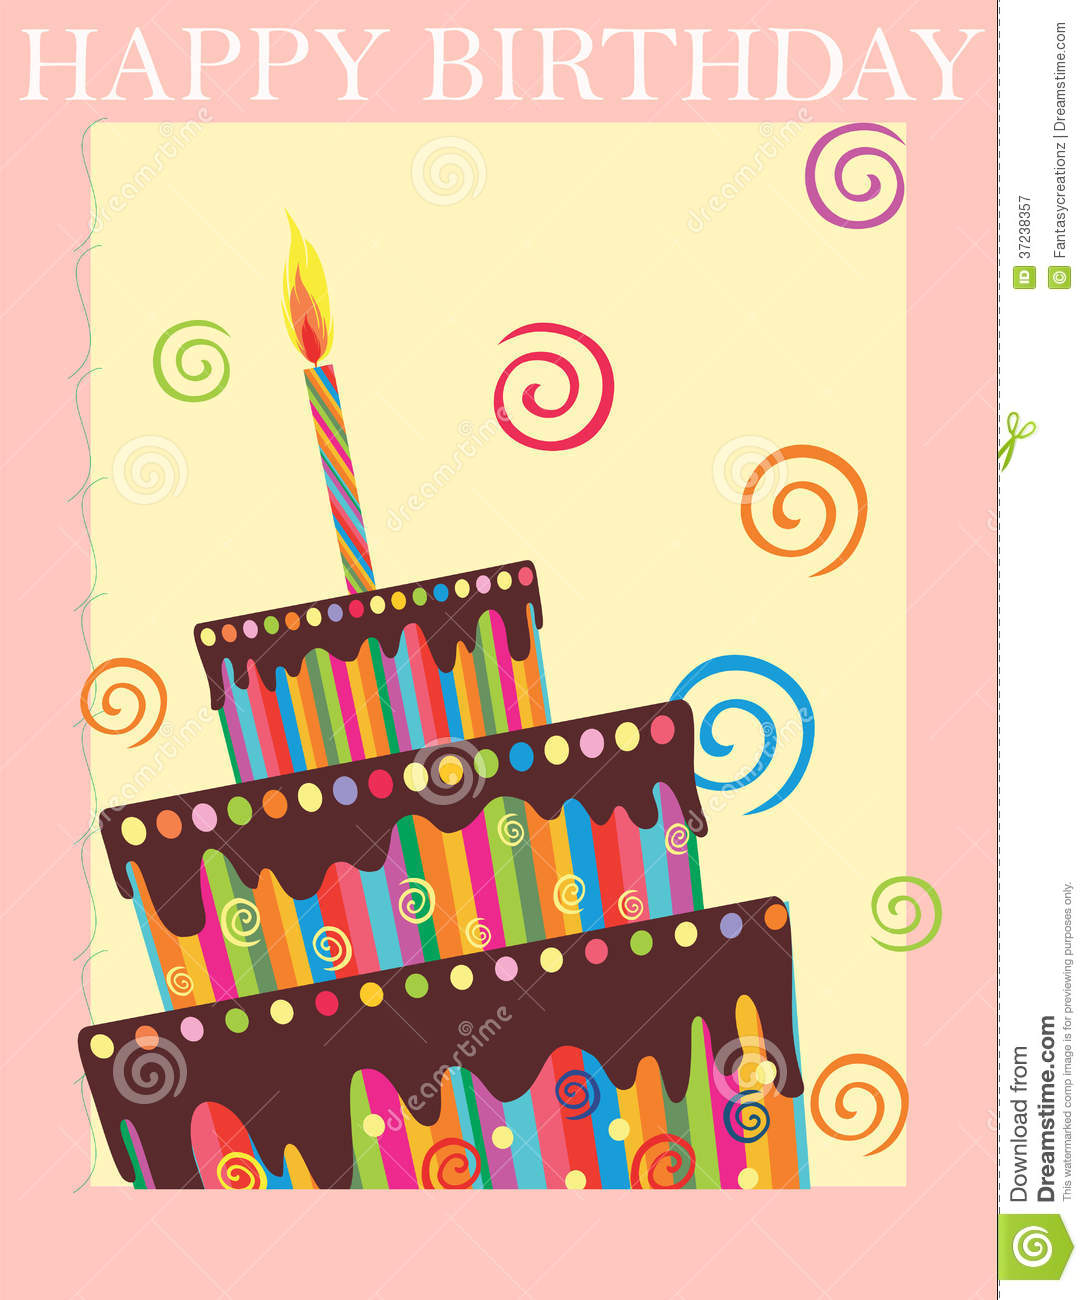 Royalty Free Birthday Images ~ Happy birthday background royalty free stock photography image